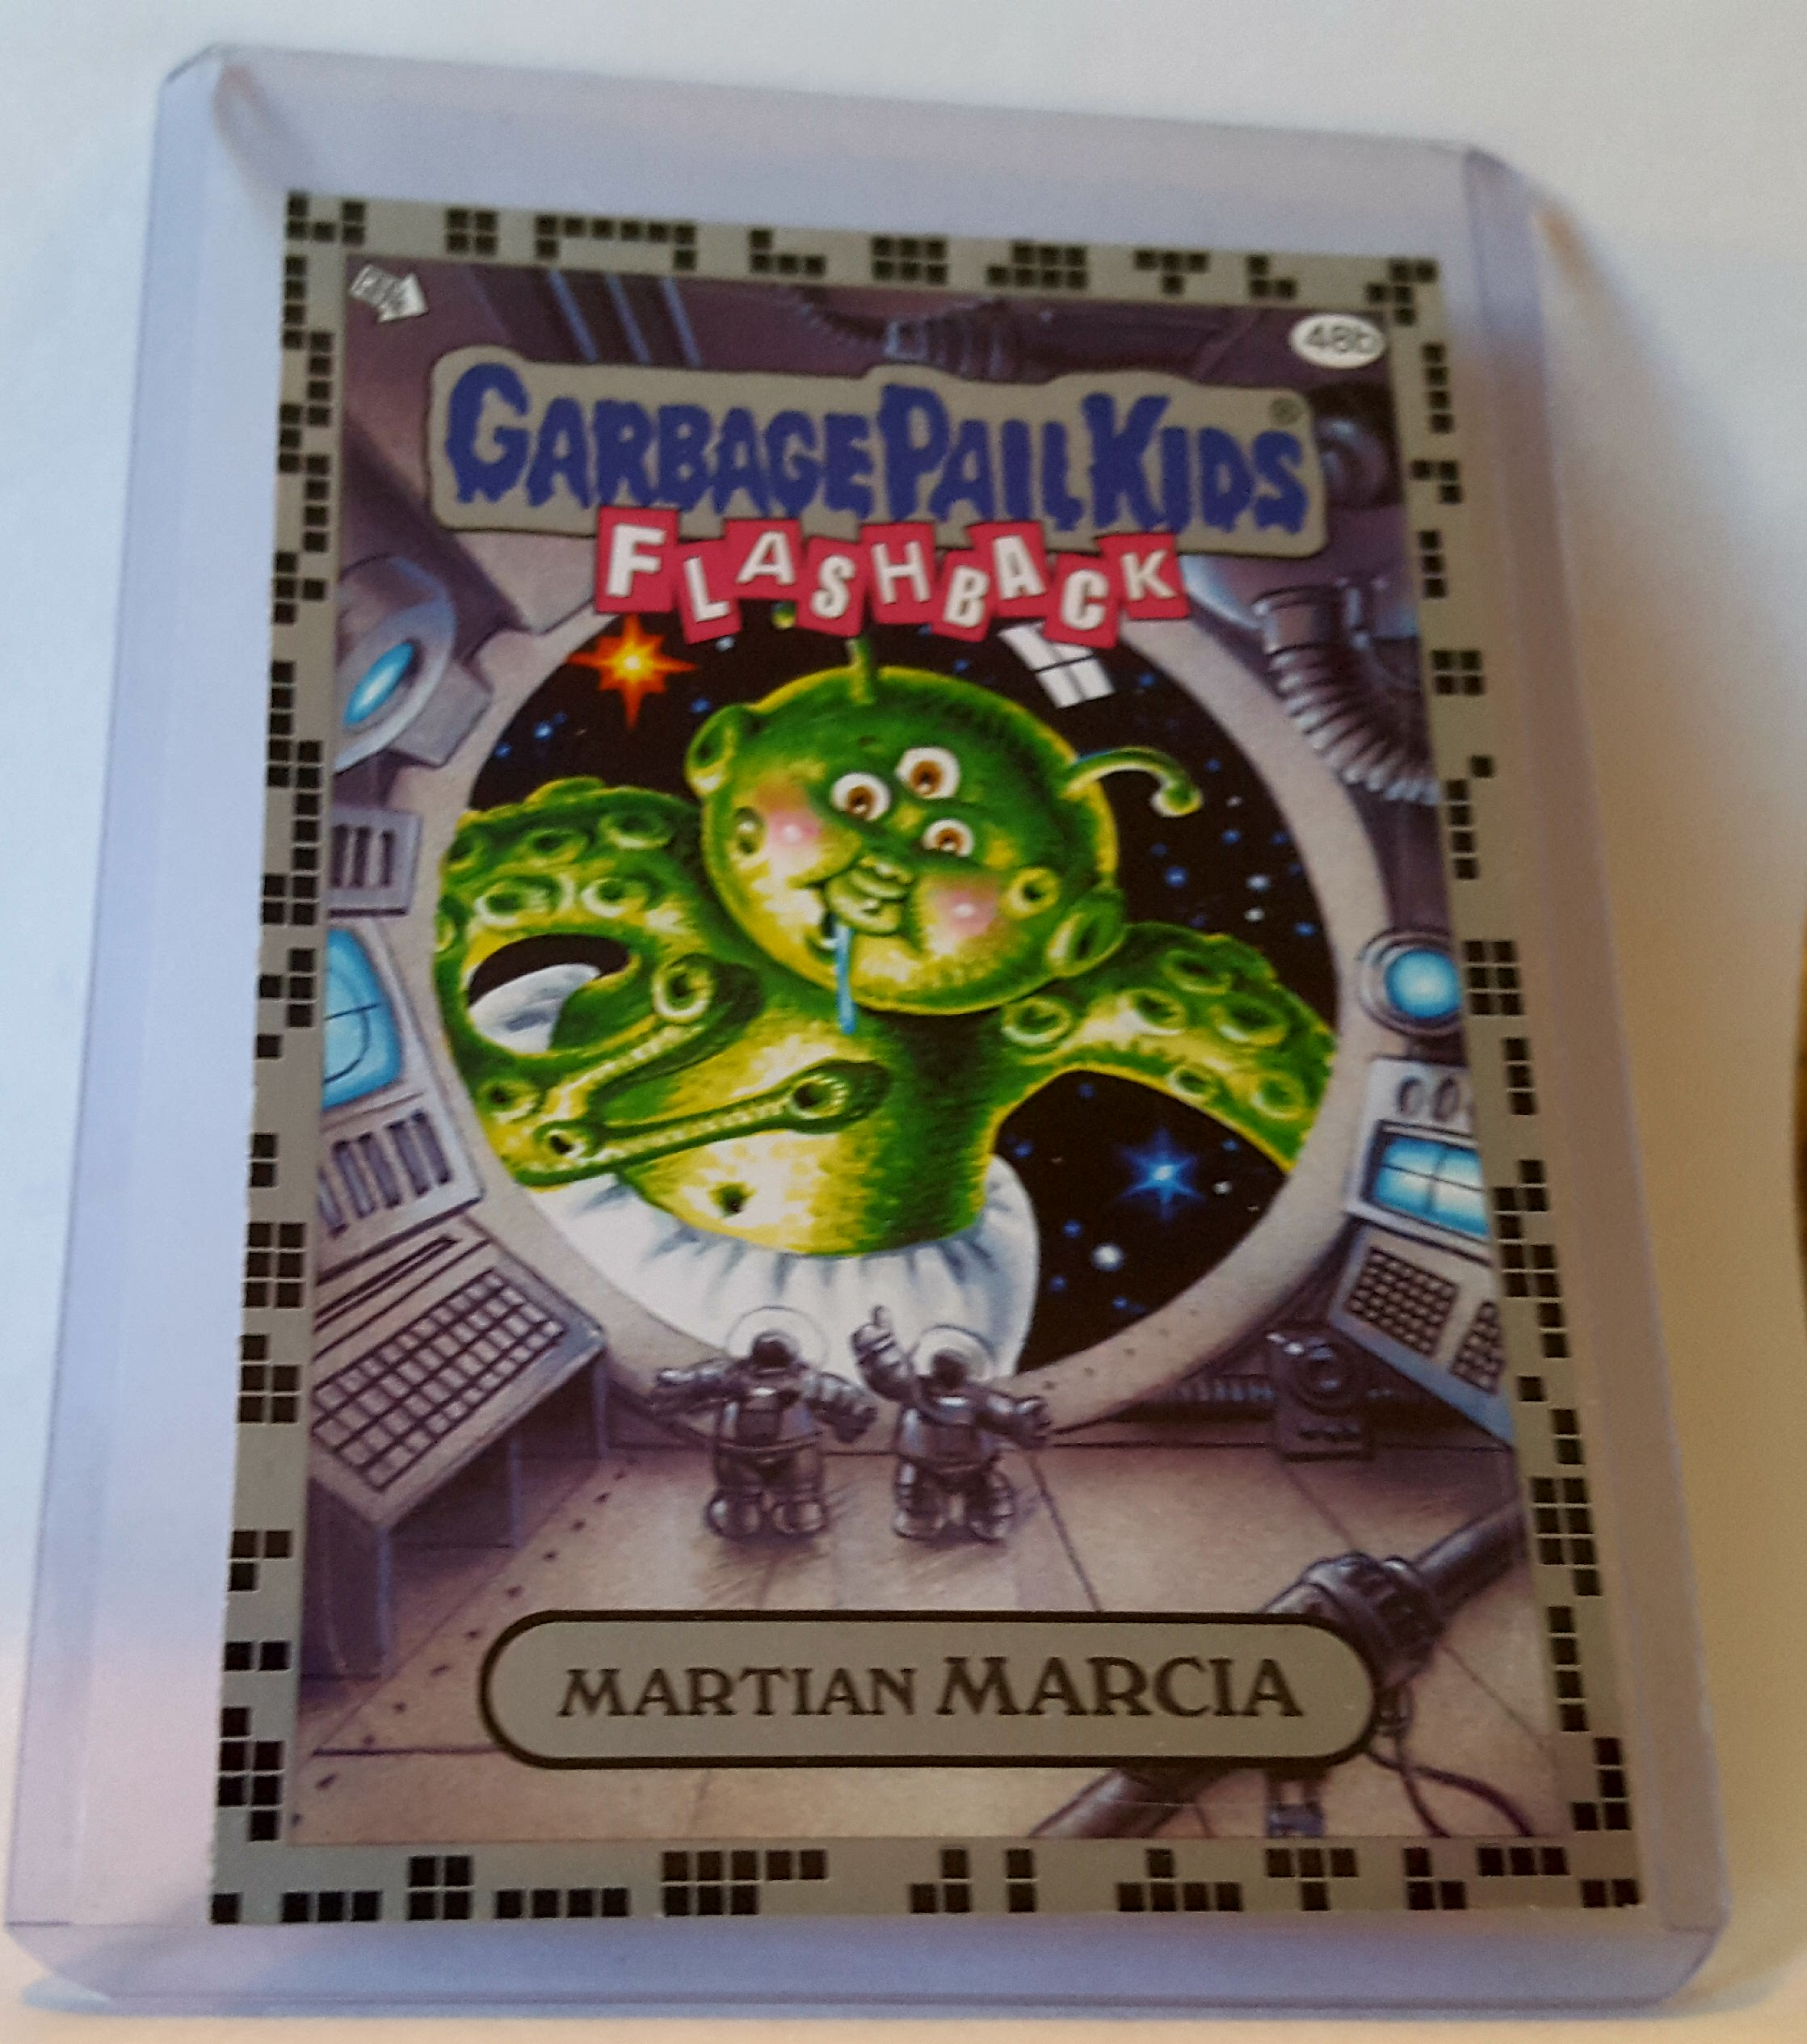 2011 Garbage Pail Kids Flashback Series 2 Martian Marcia Gray Border Trading Card